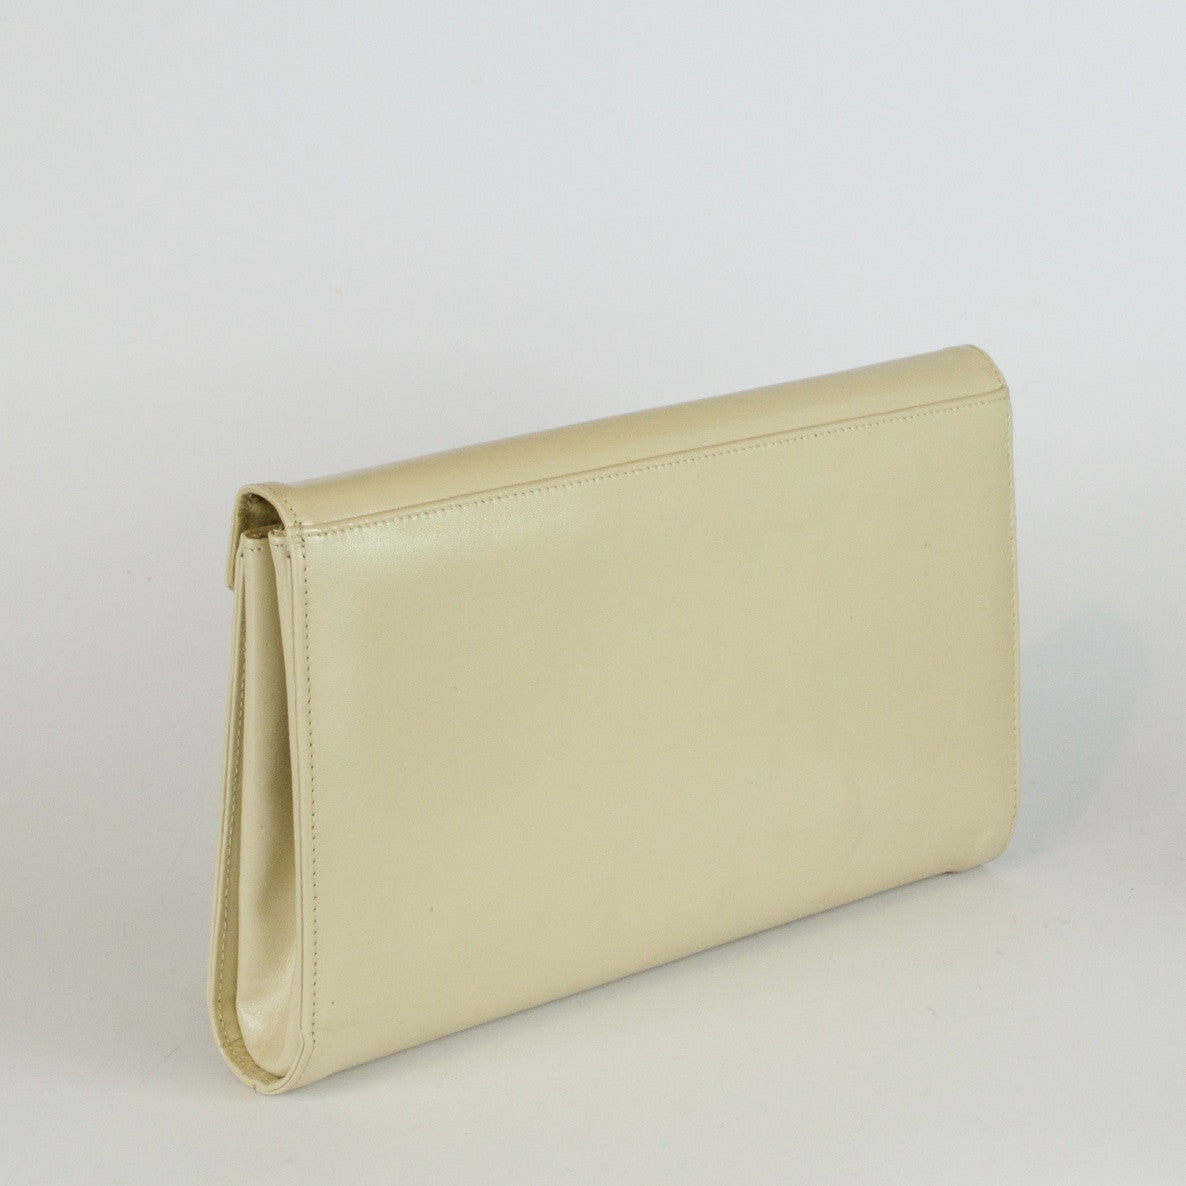 Vintage large statement beige leather clutch bag by Eros